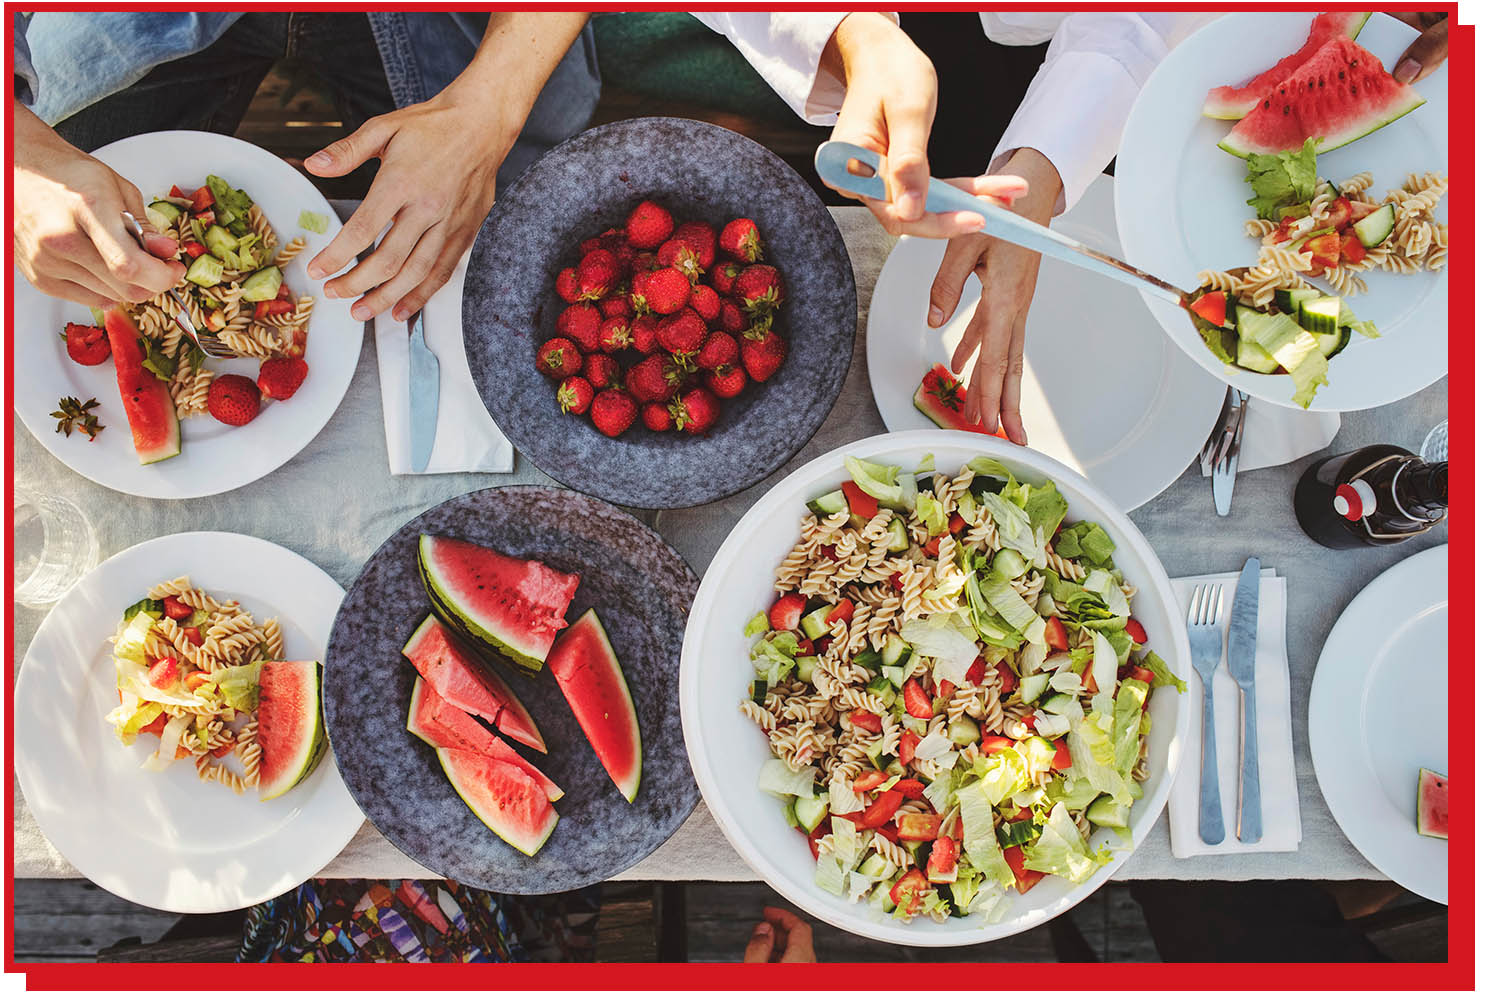 Overhead view of table with bowls of pasta salad, cut watermelon, and strawberries.